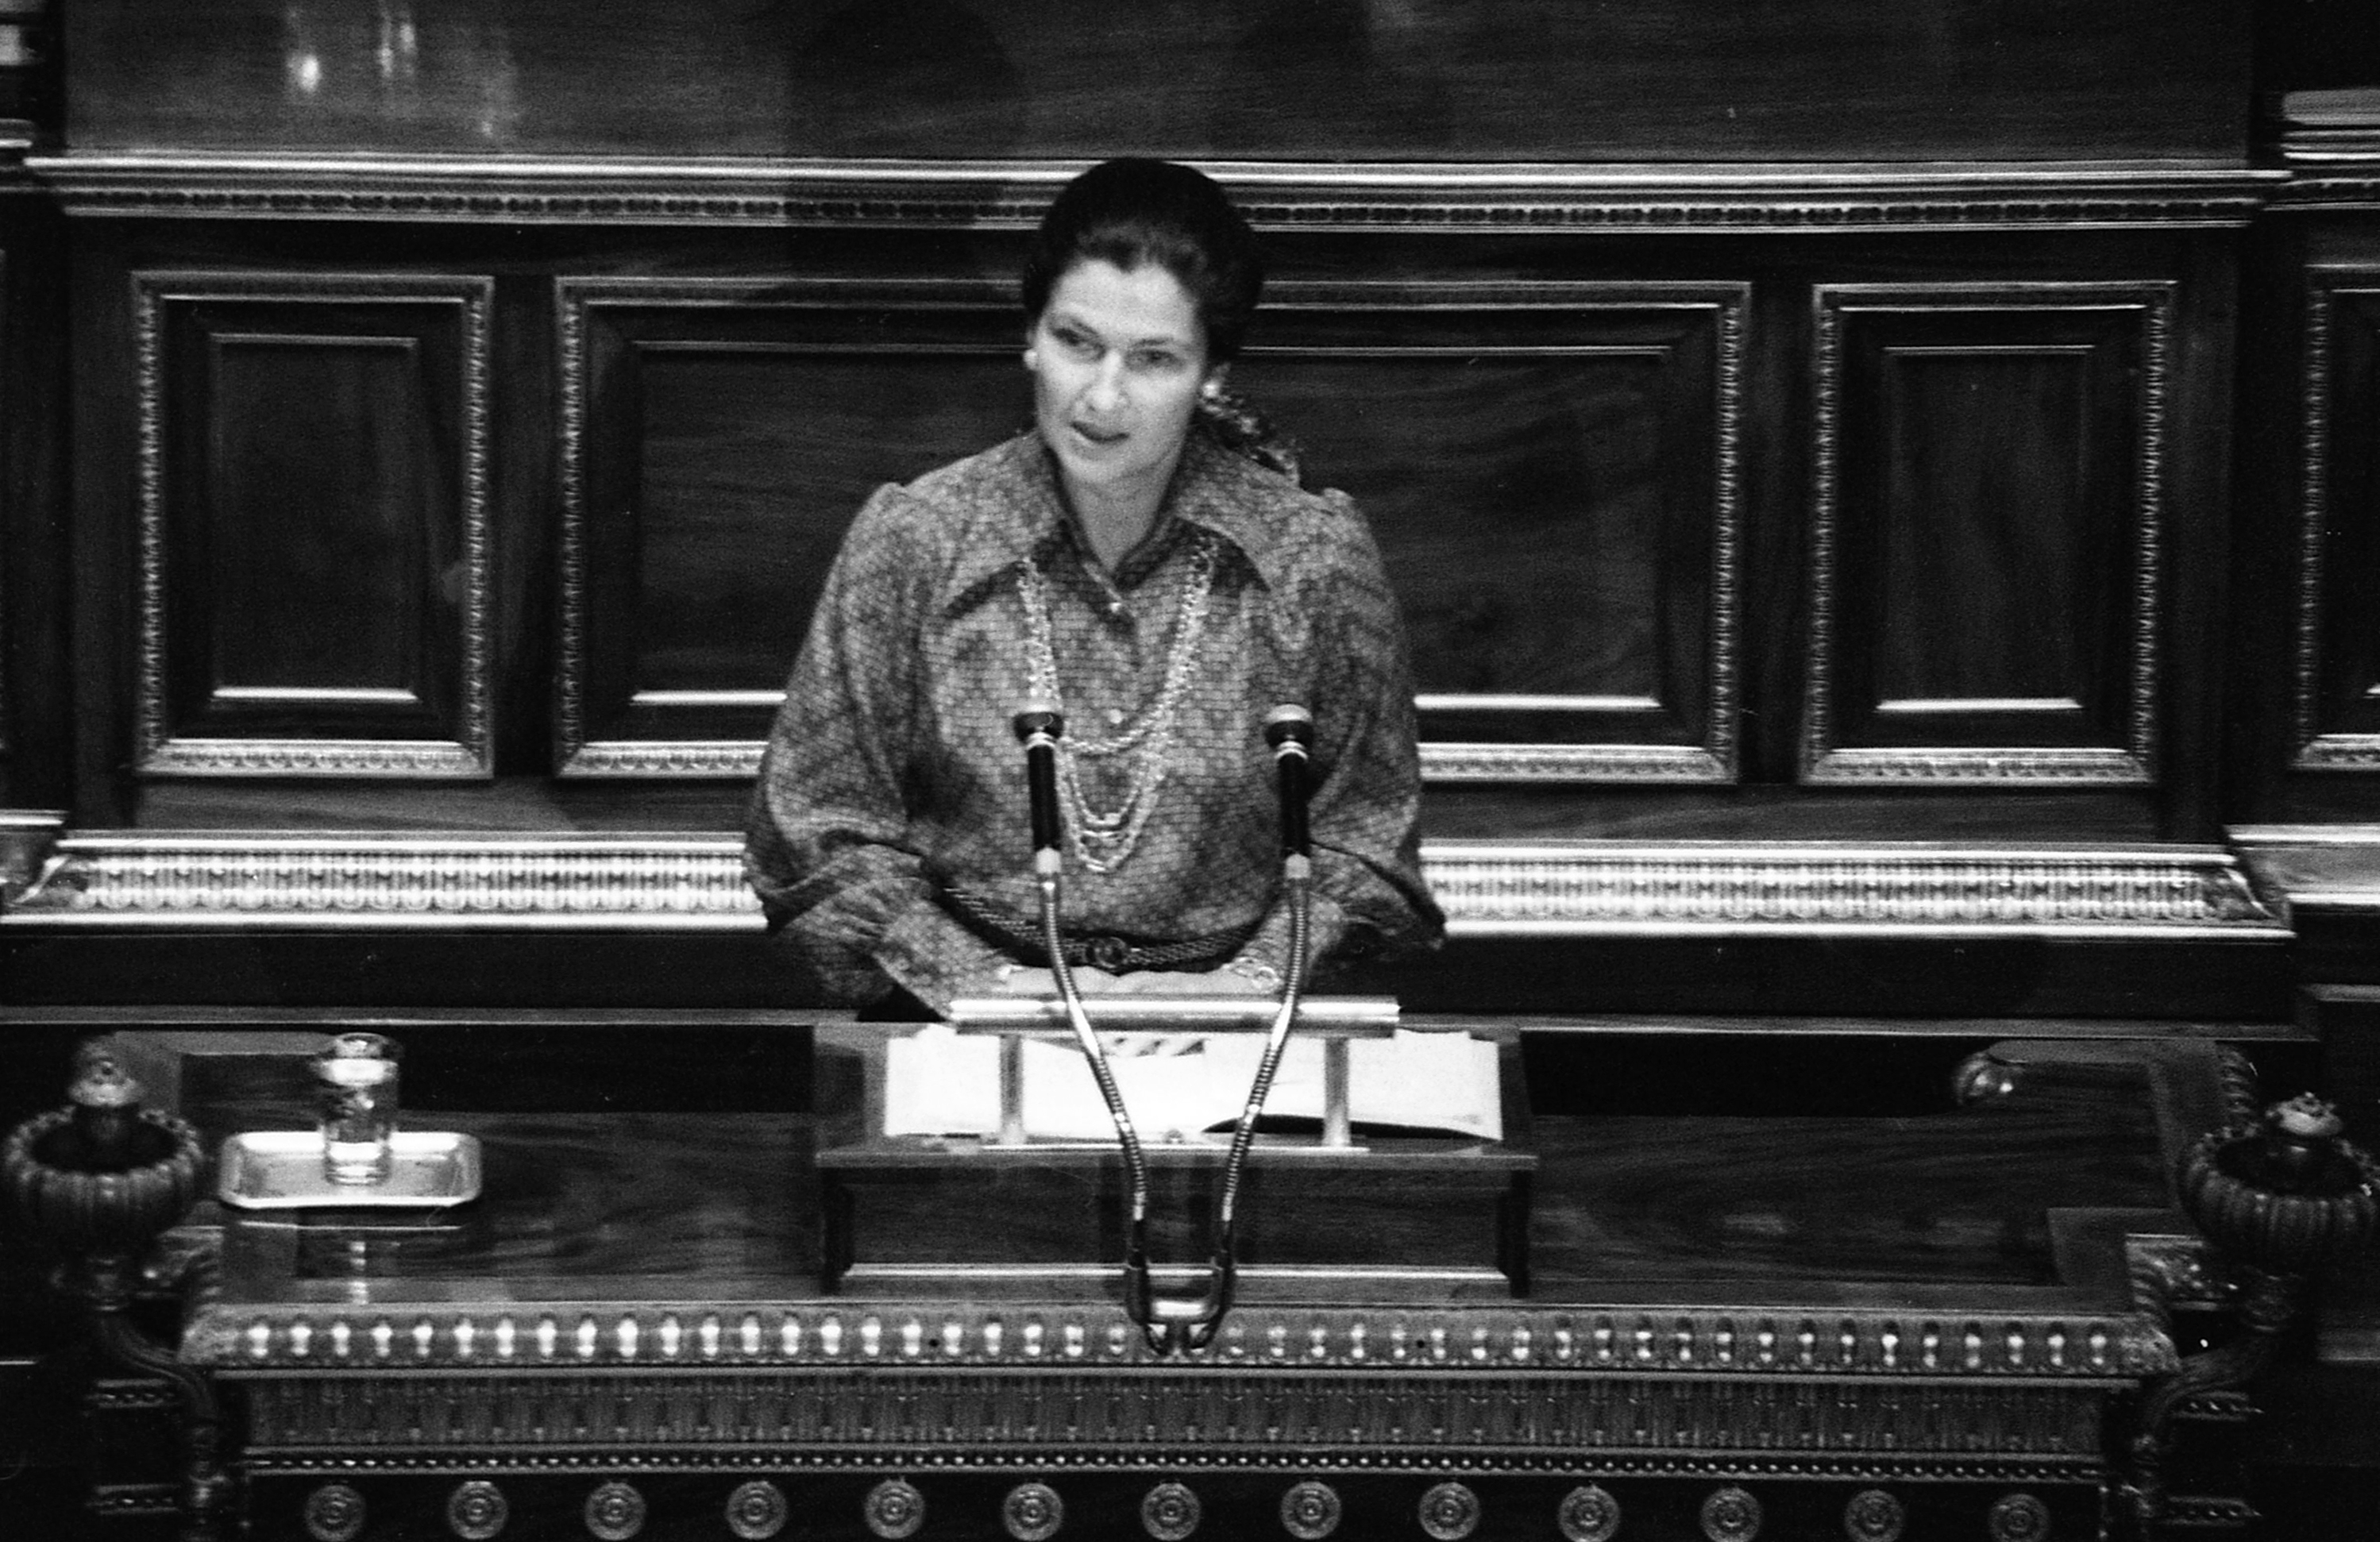 Iconic French leader Simone Veil dies at 89